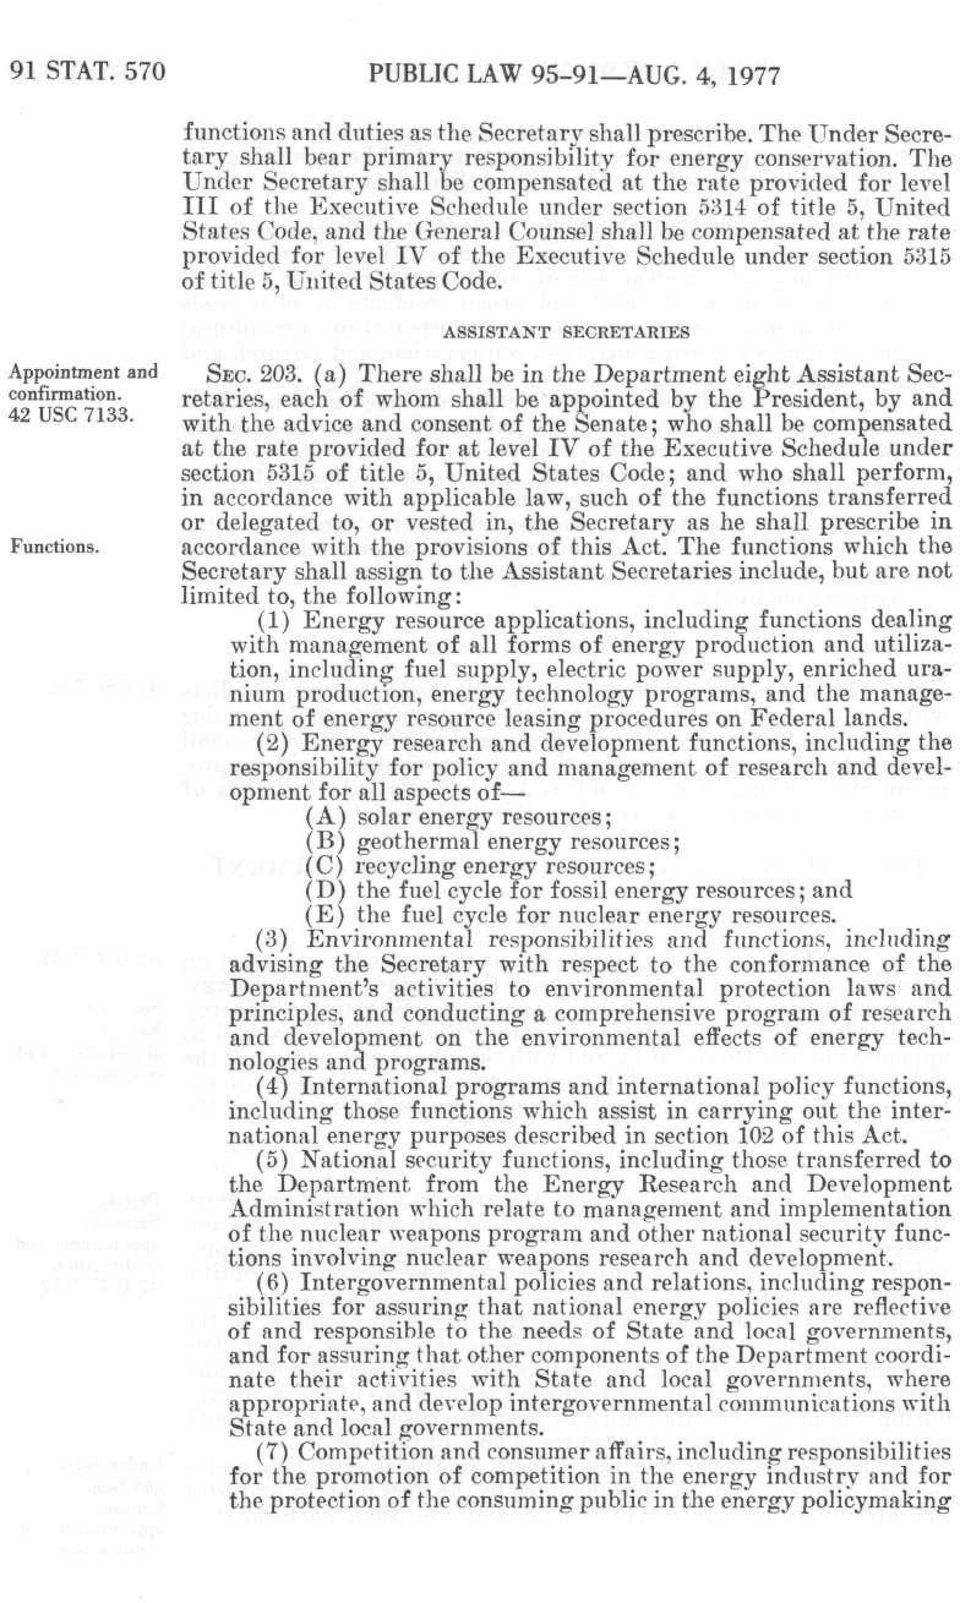 at the rate provided for level IV of the Executive Schedule under section 5315 of title 5, United States Code. Appointment and confirmation. 42 use 7133. Functions. ASSISTANT SECRETARIES SEC. 203.